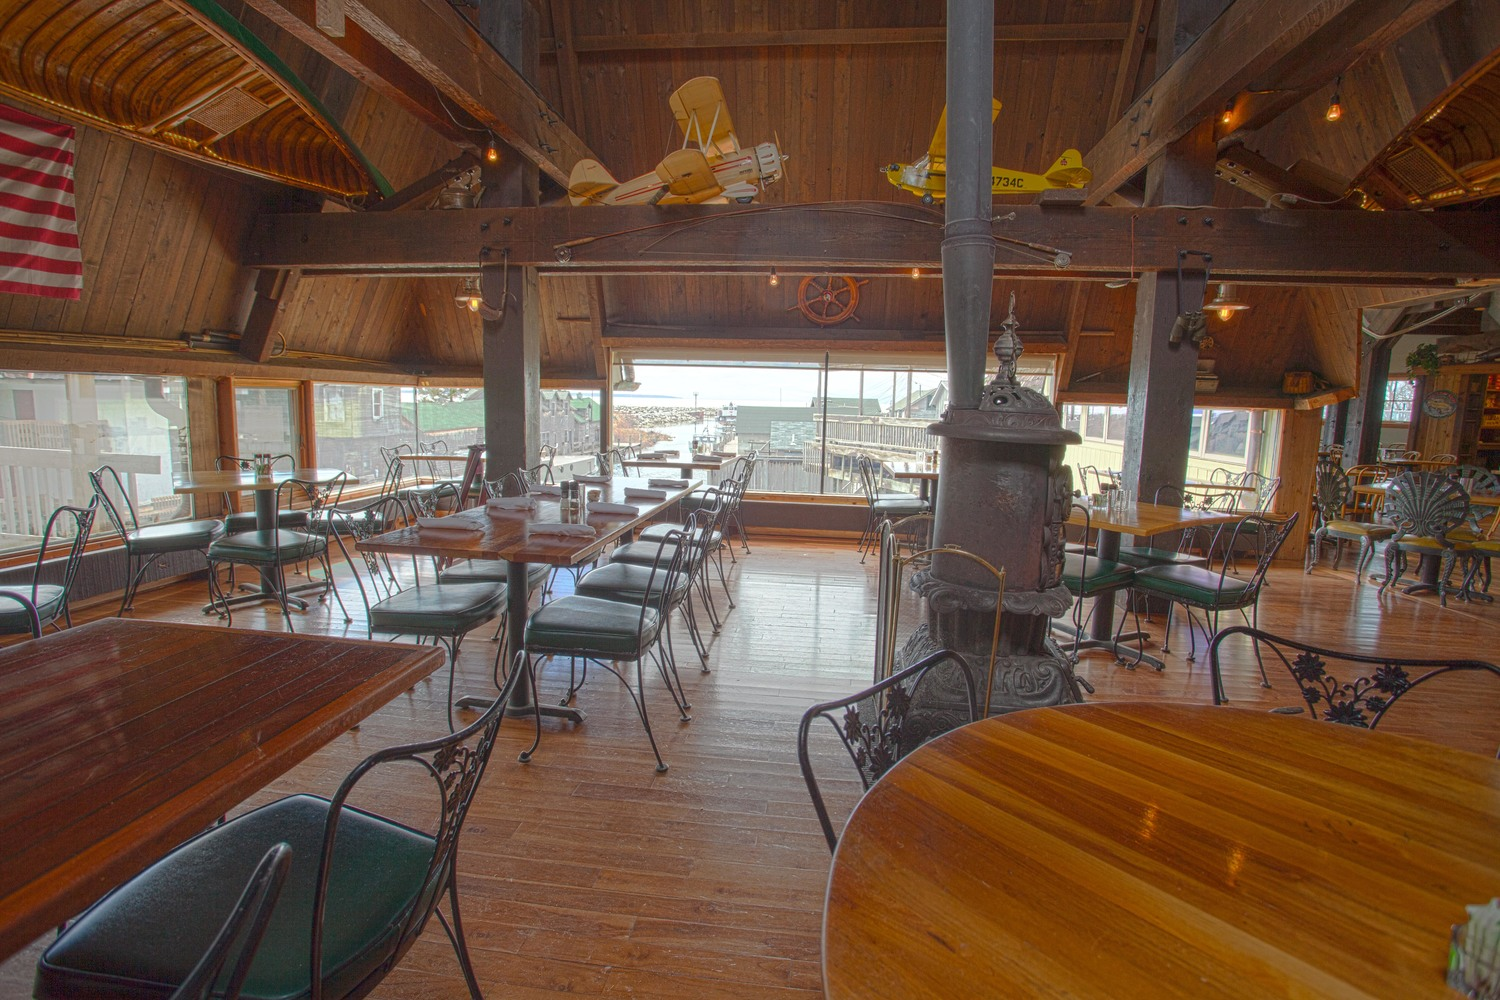 The Cove - Laid-back seasonal riverside grill & bar serving gourmet seafood & steaks amid fishing-cabin decor.(231)256-9834